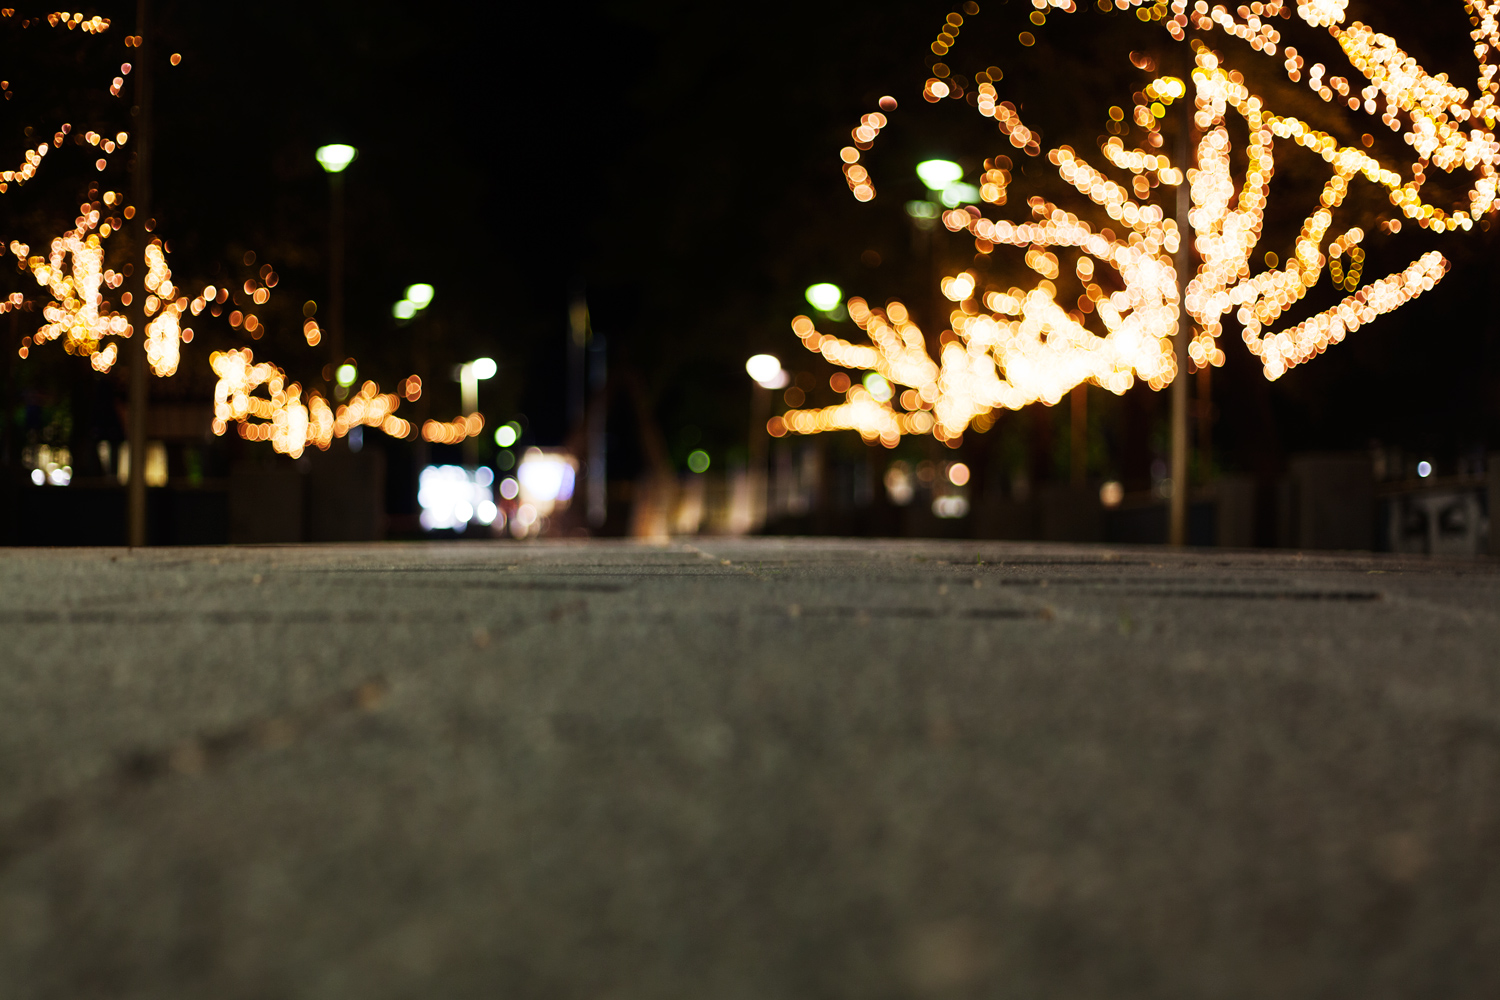 Image: The f/1.8 aperture of the Canon EF 50mm f/1.8 II allowed me to take this shot with a lot less...